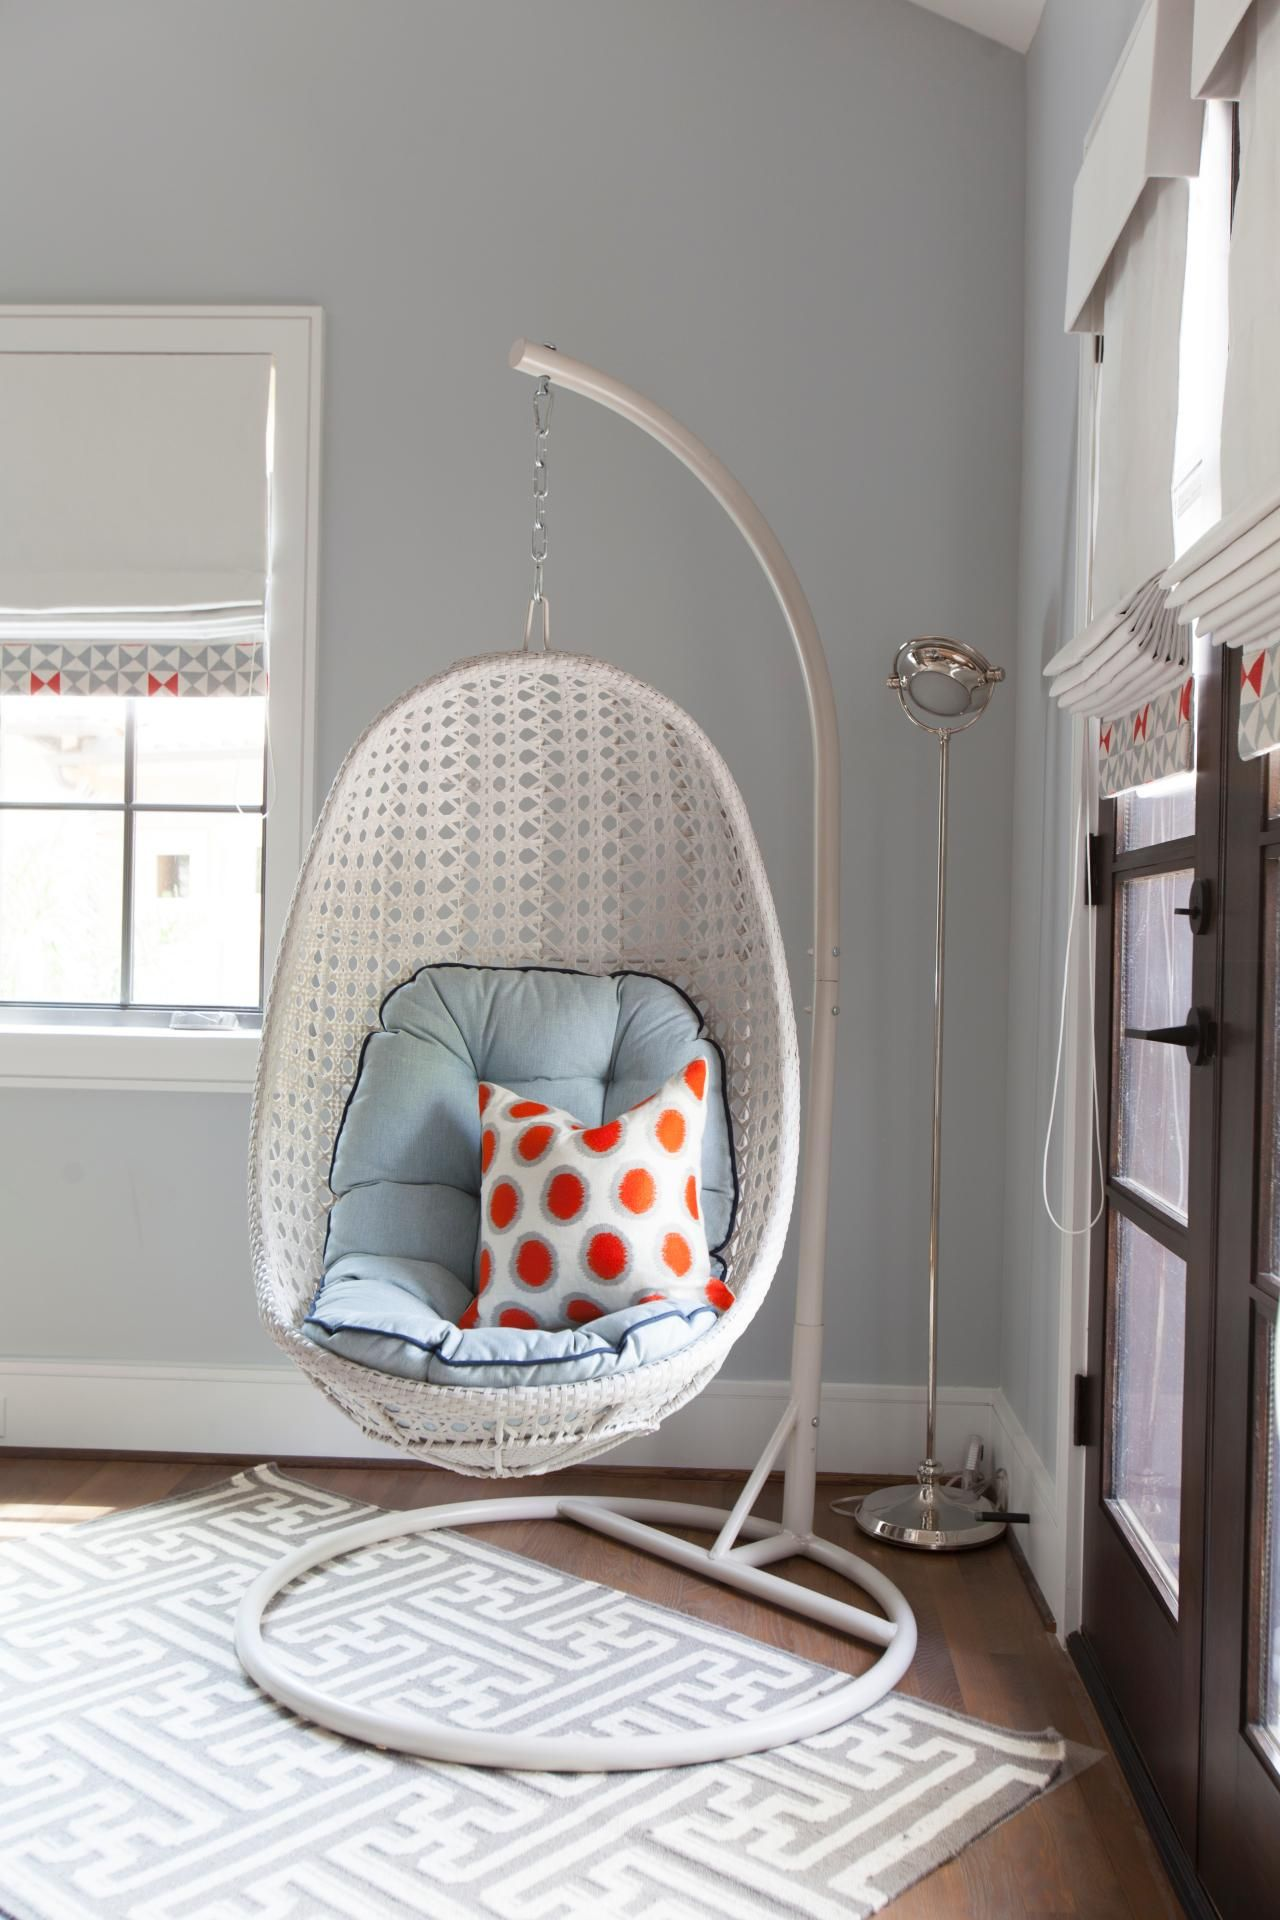 why didn't my childhood bedroom have a hanging chair? | hanging